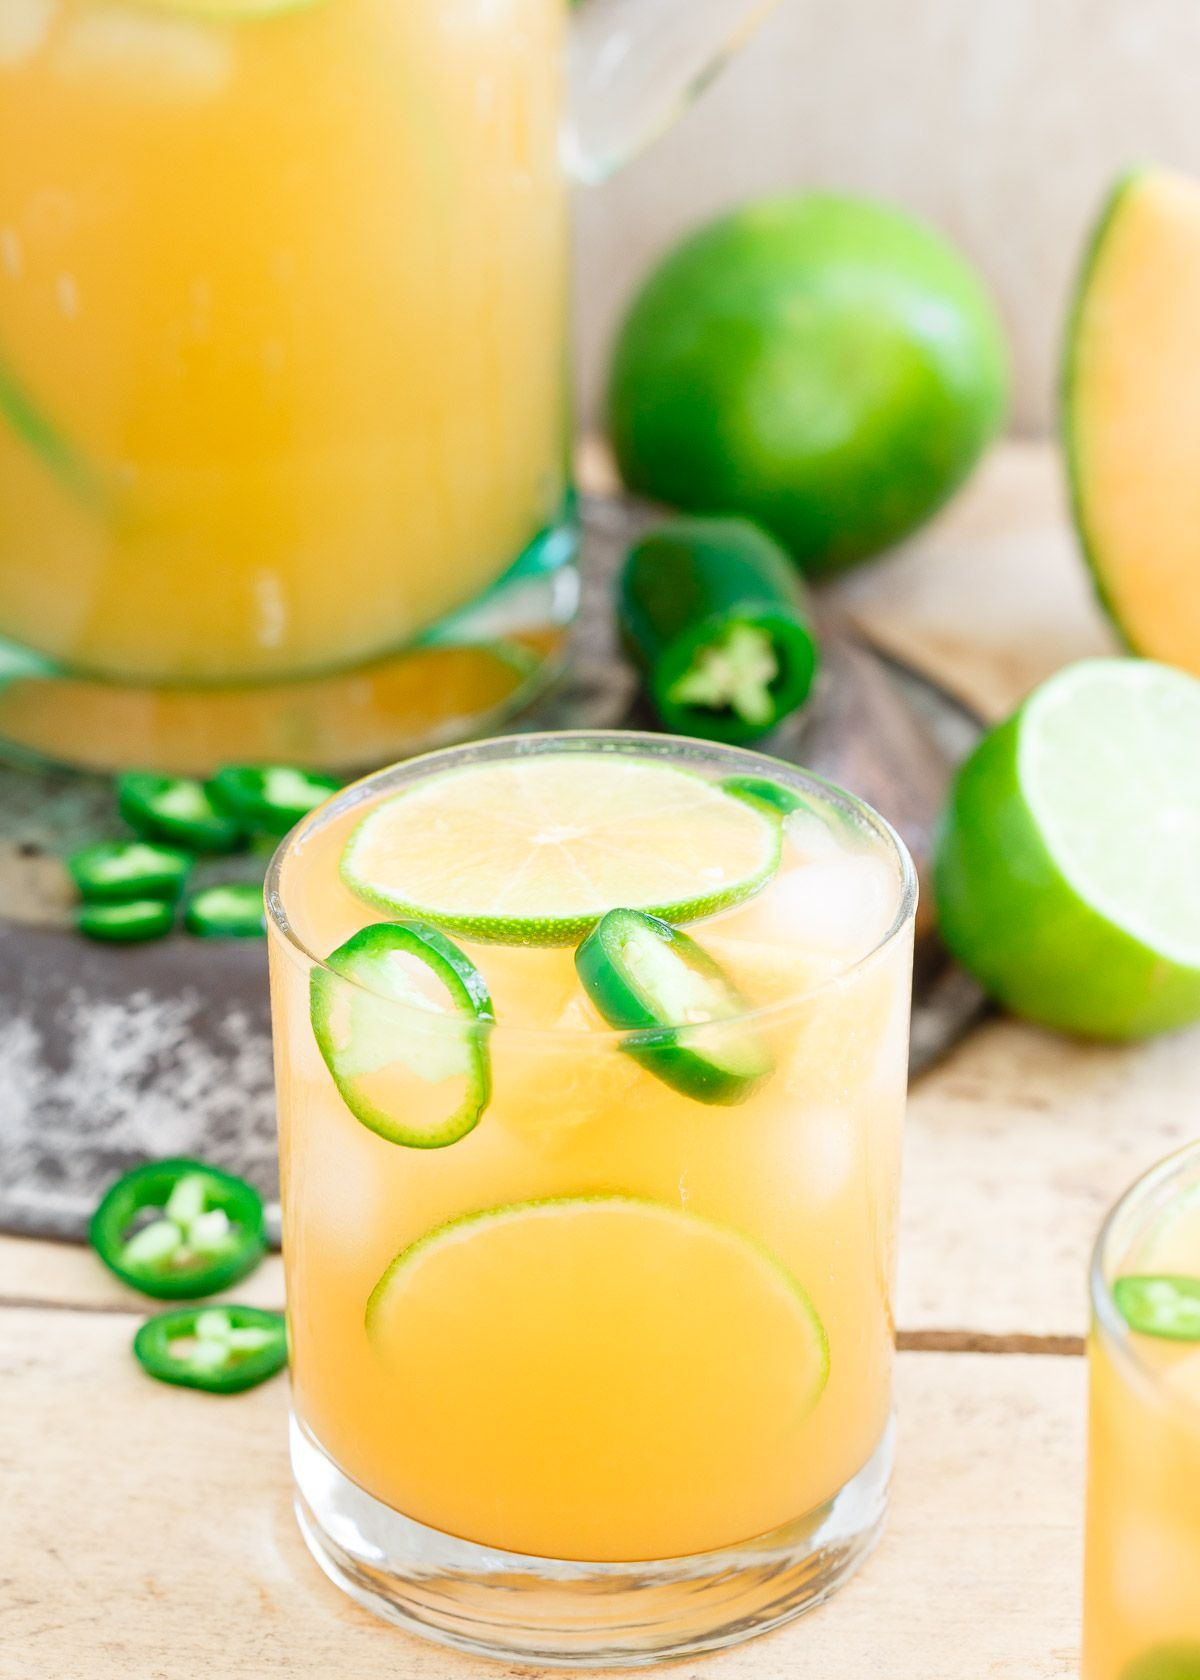 Refreshing, slightly sweet, subtly spicy and a bit tart, this cantaloupe lime…